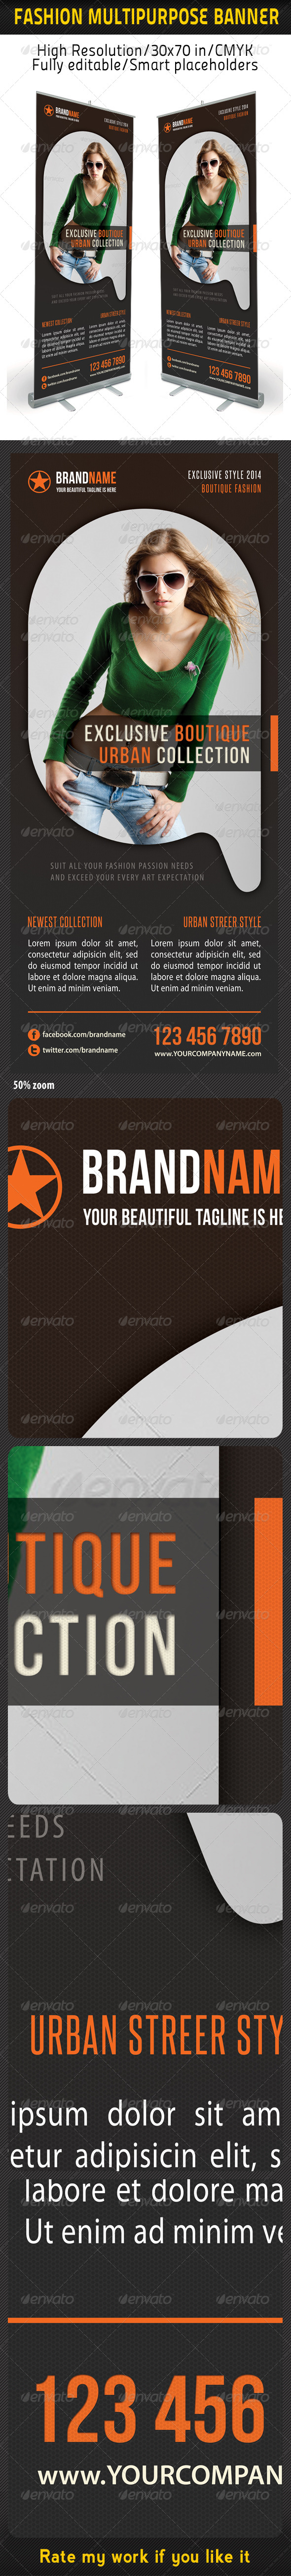 GraphicRiver Fashion Multipurpose Banner Template 21 6332008